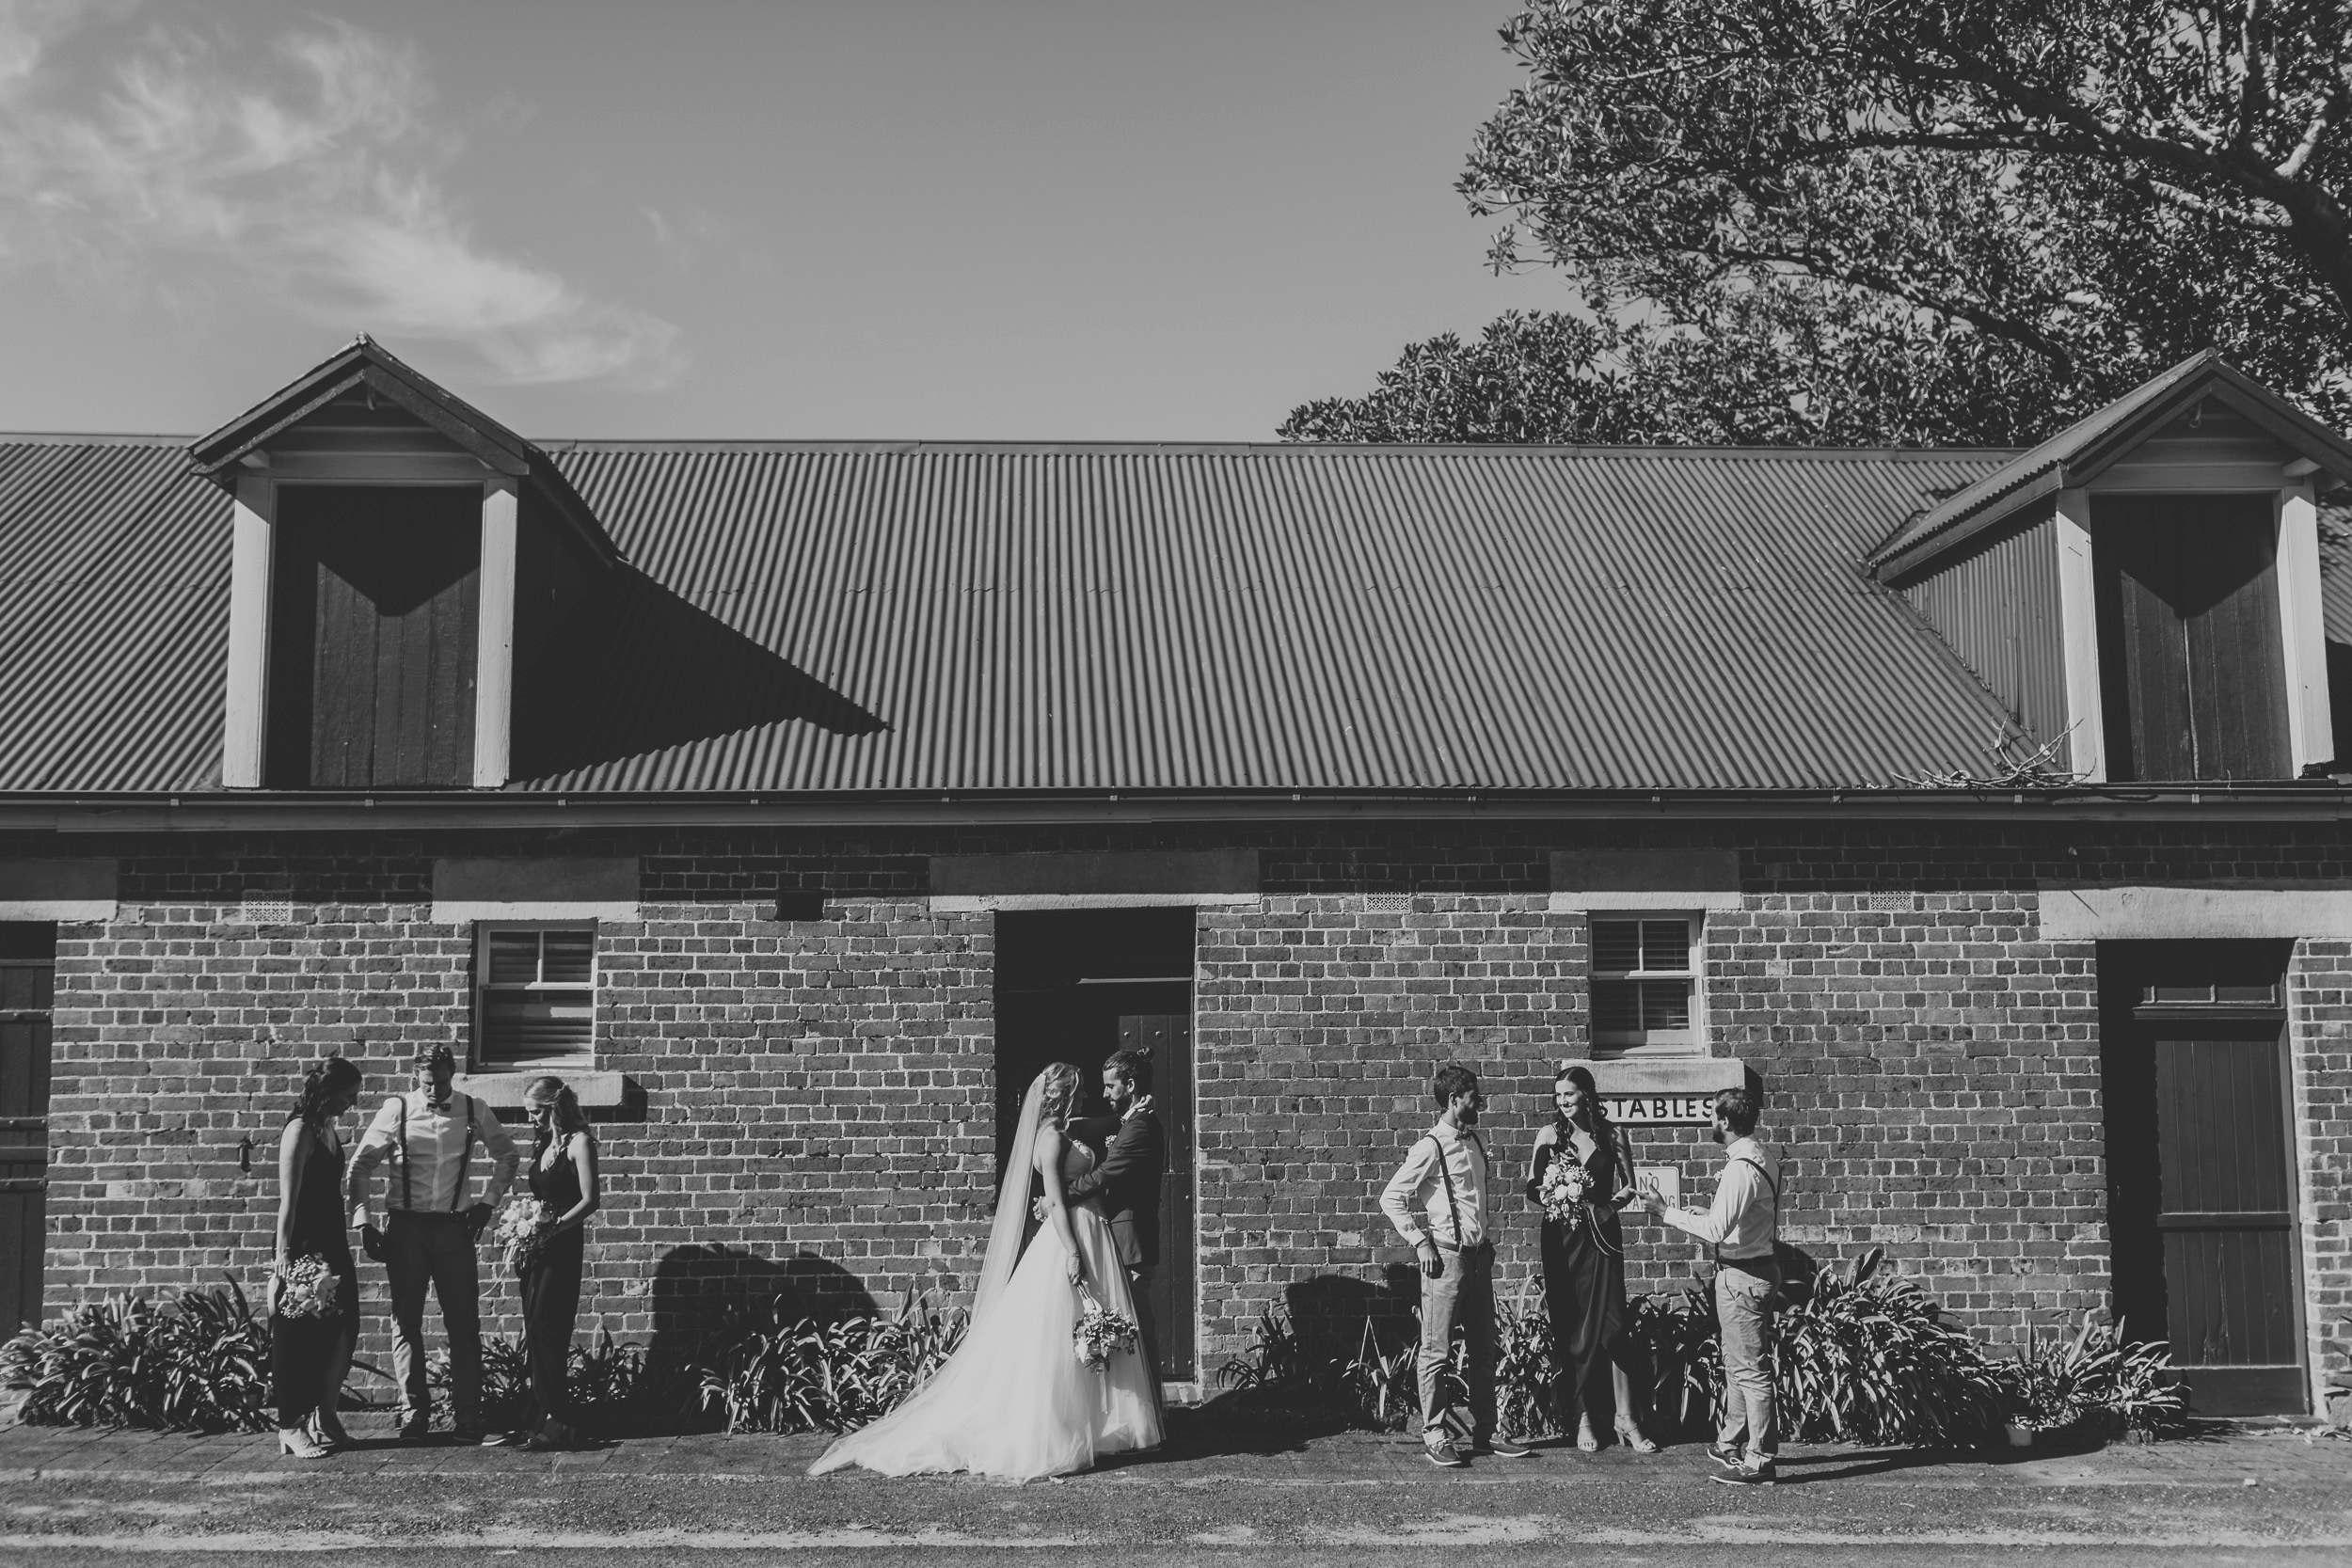 20170311 - Holly & Dan Coolangatta Estate Wedding | 217-2-2.jpg